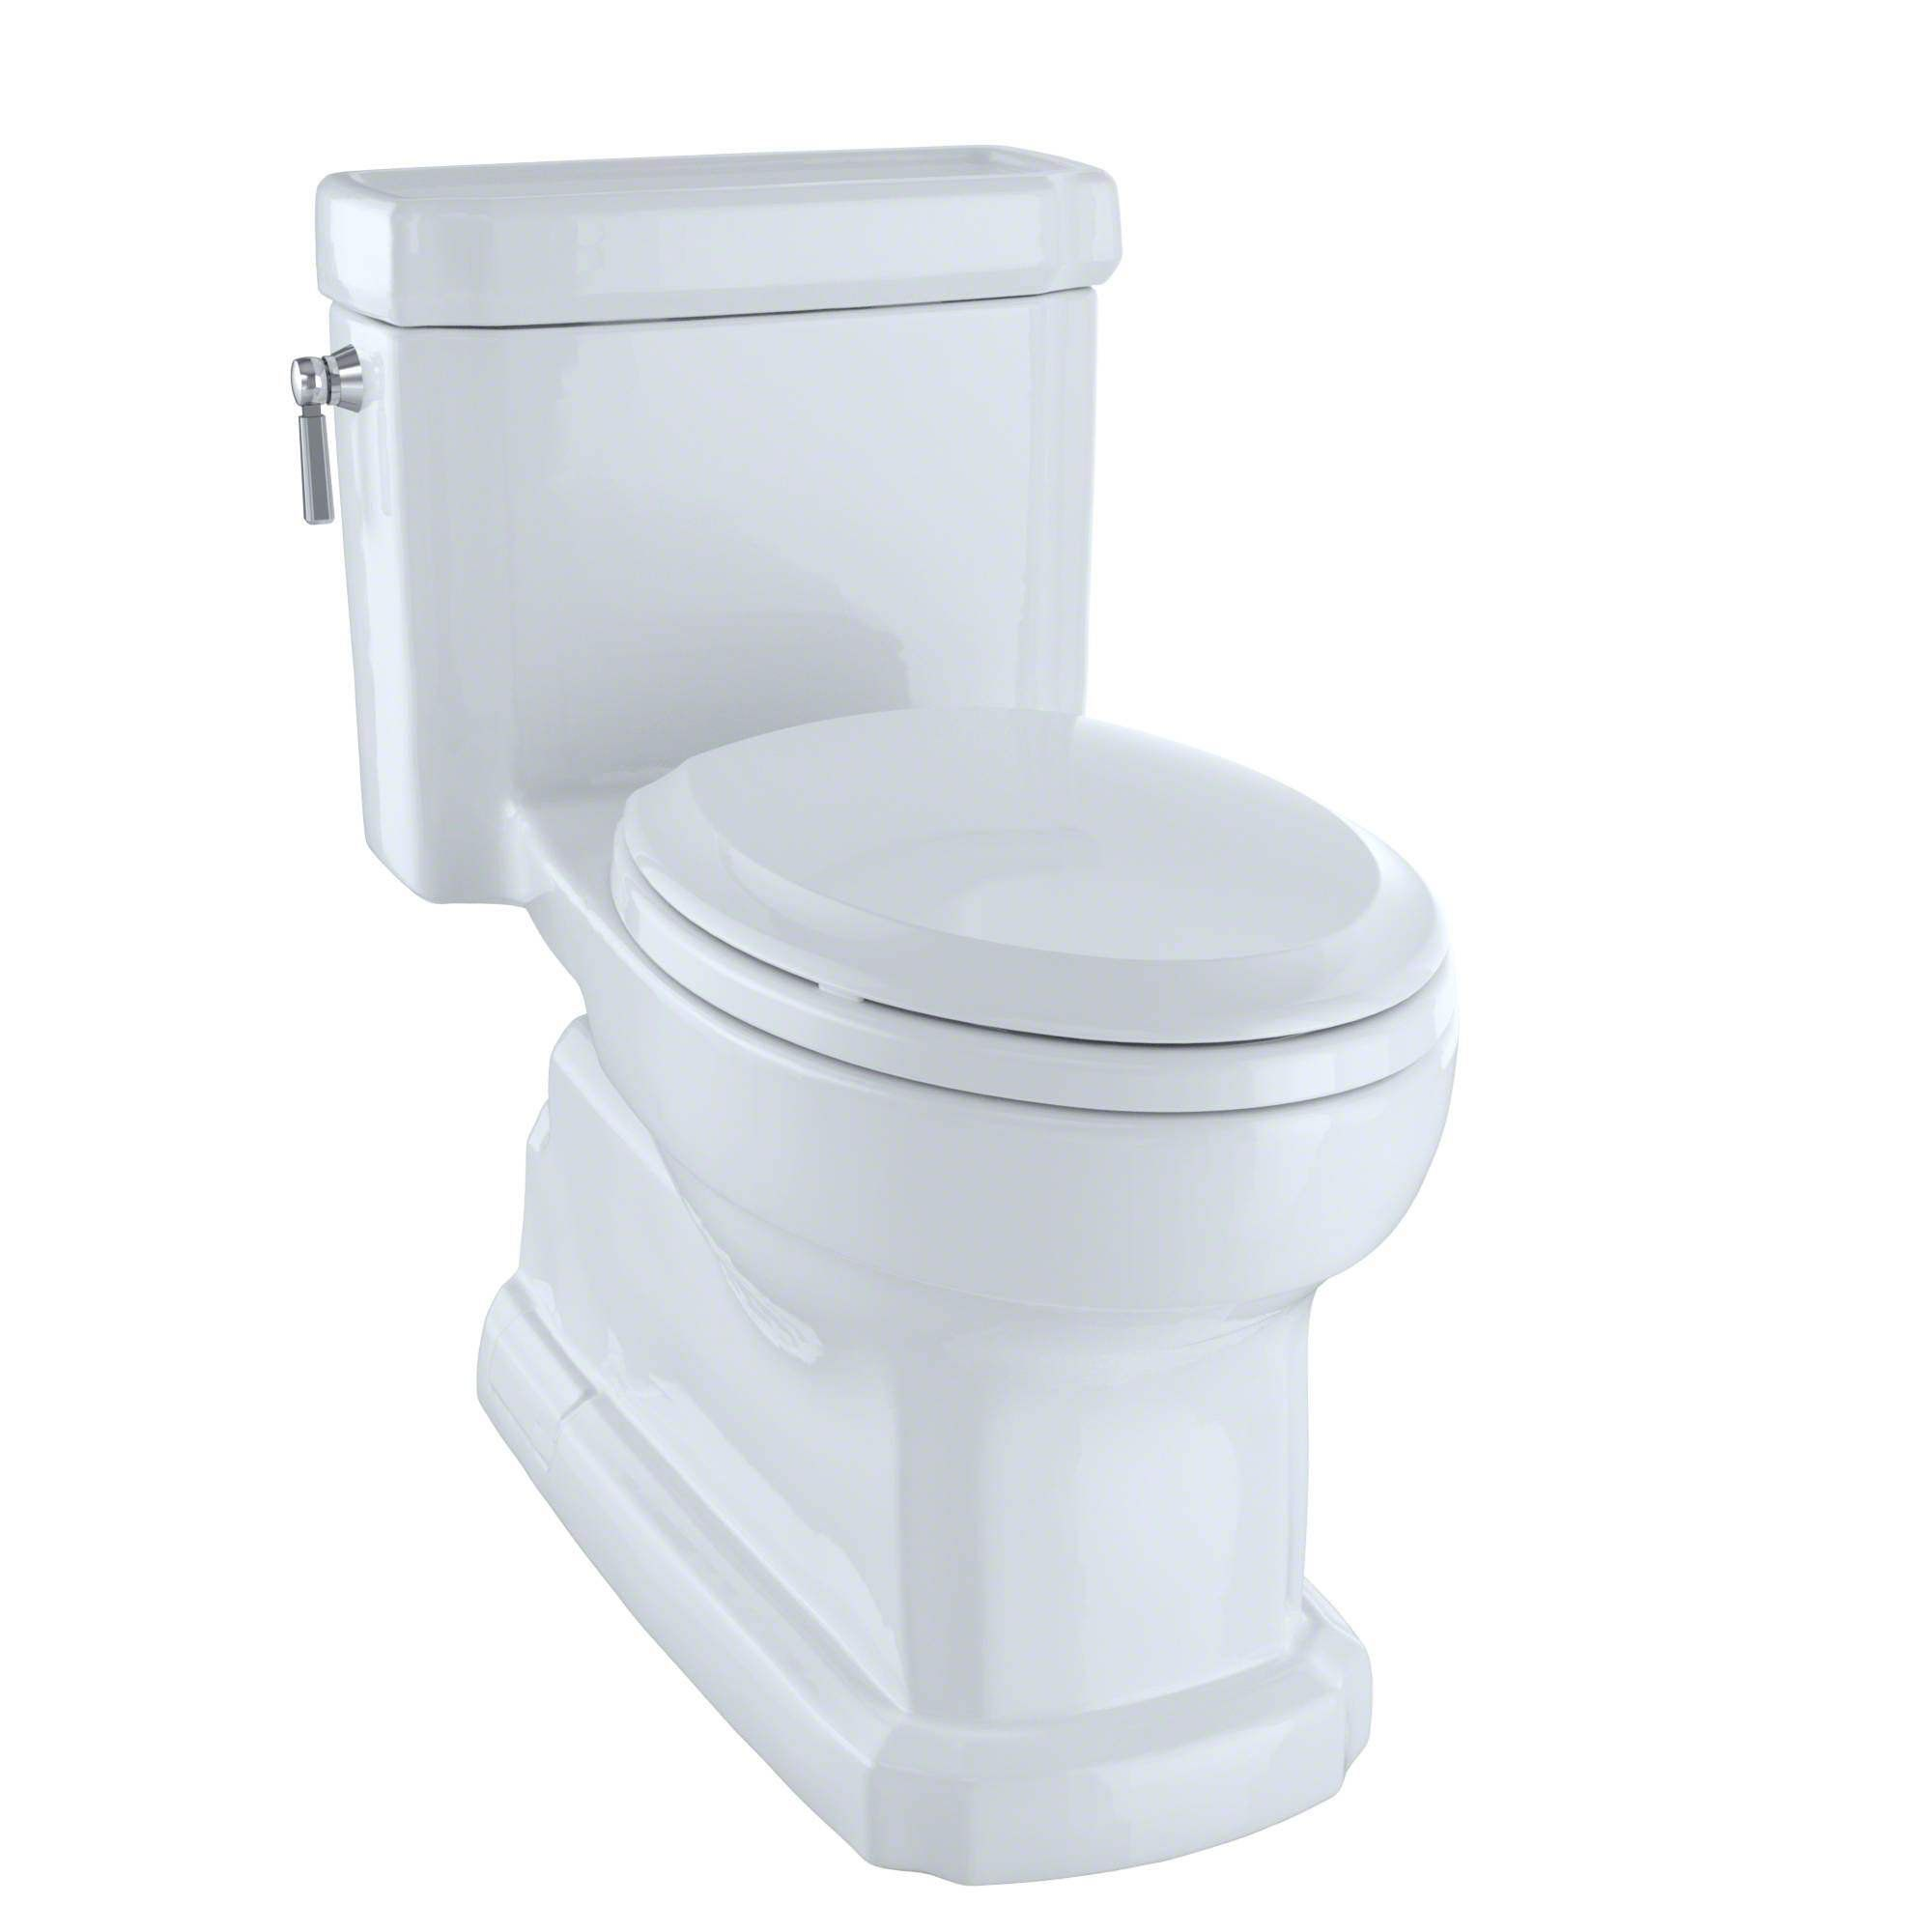 Toto Guinevere Elongated One Piece Toilet Ms974224cefg 01 Cotton White Toto Toilet One Piece Toilets Toilet